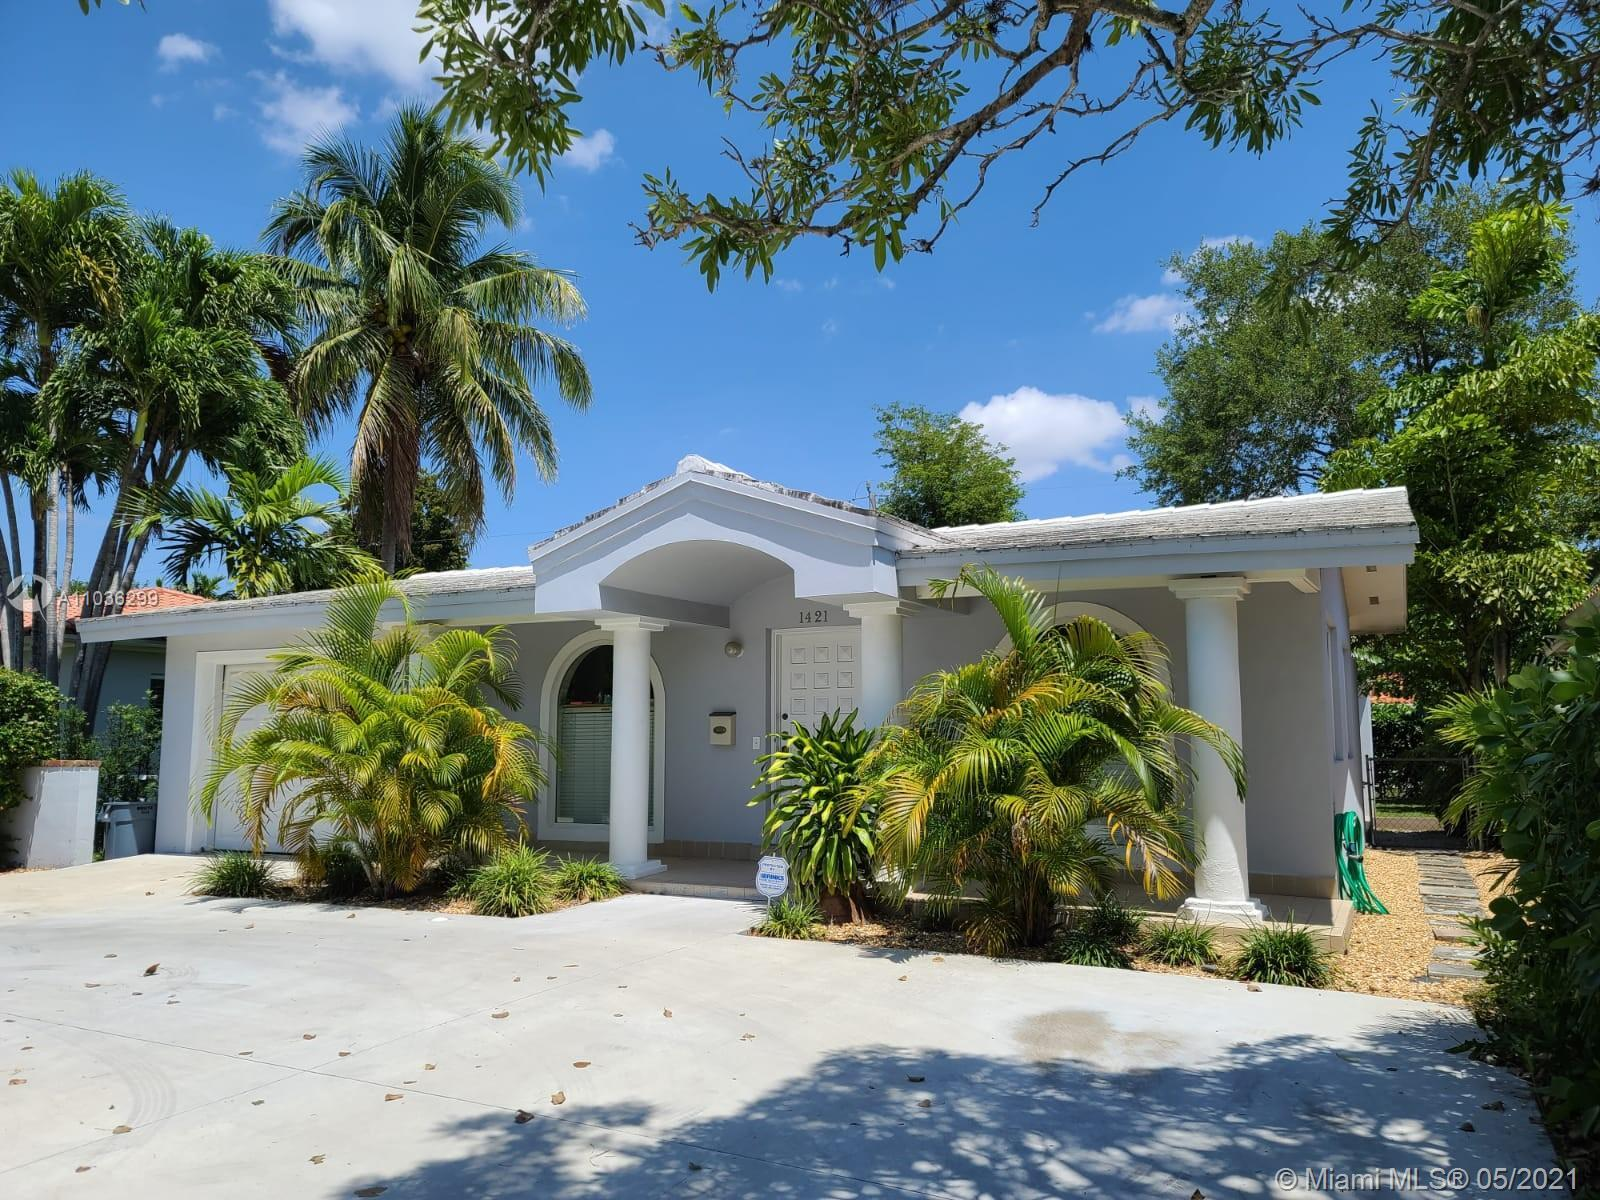 3 BEDROOMS, 2 BATHS HOME IN GREAT LOCATION IN CORAL GABLES CLOSE TO RERSTAURANTS,SHOPPING CENTERS,KI